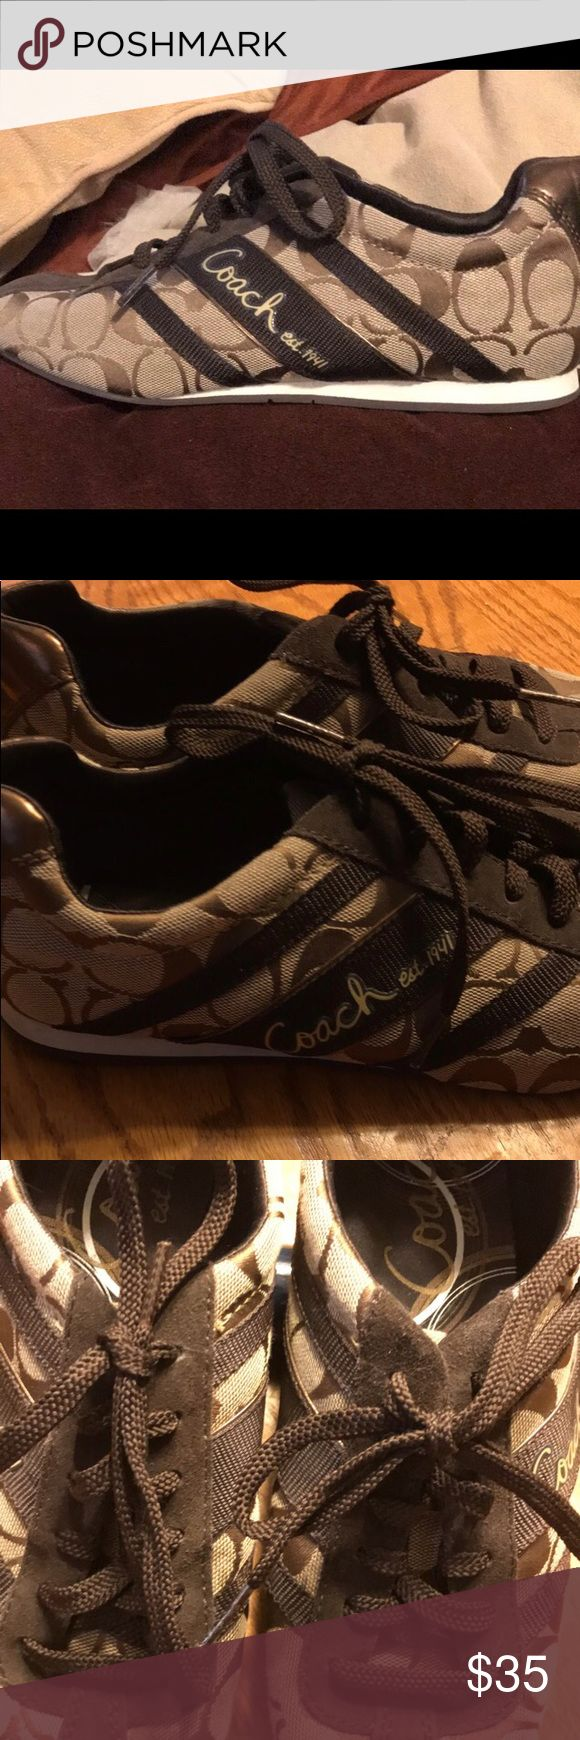 Signature jacquard Coach Tennis Shoes It's used coach Tennis Shoes And very good condition just worn a few time and size 8.5 Coach Shoes Sneakers